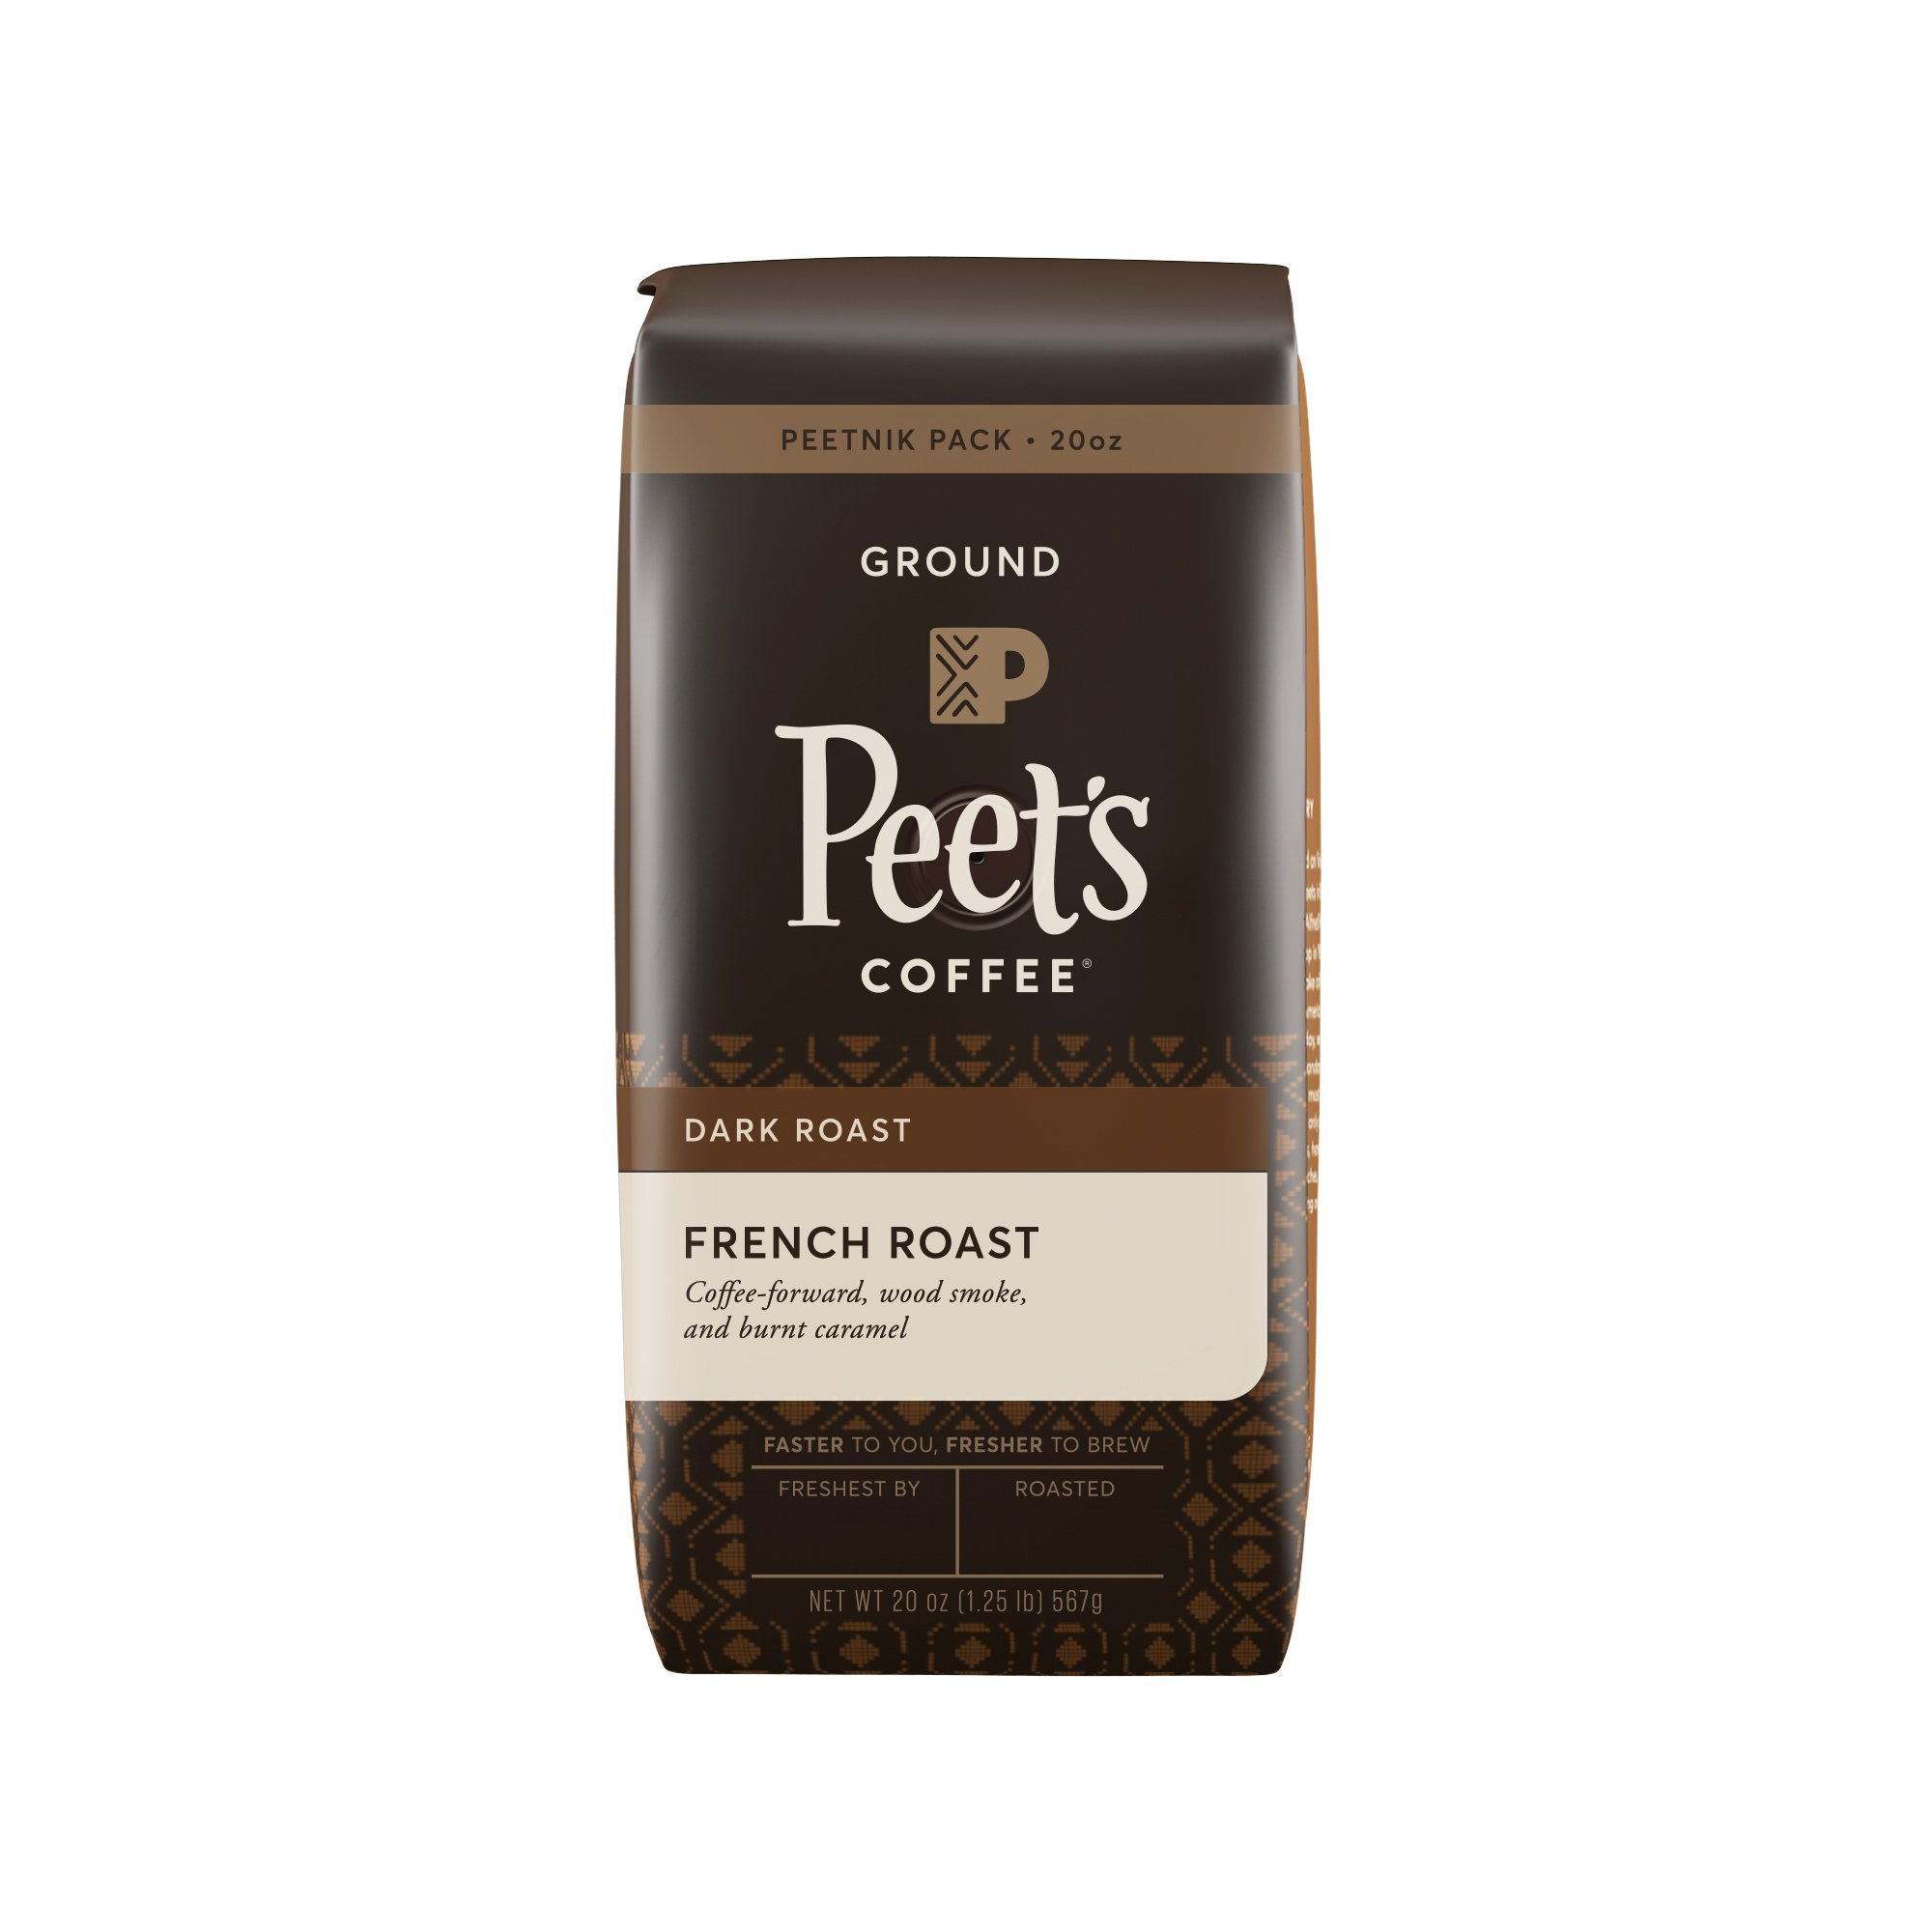 Peet's Coffee Peetnik Pack French Roast, Dark Roast, Ground 20 Oz